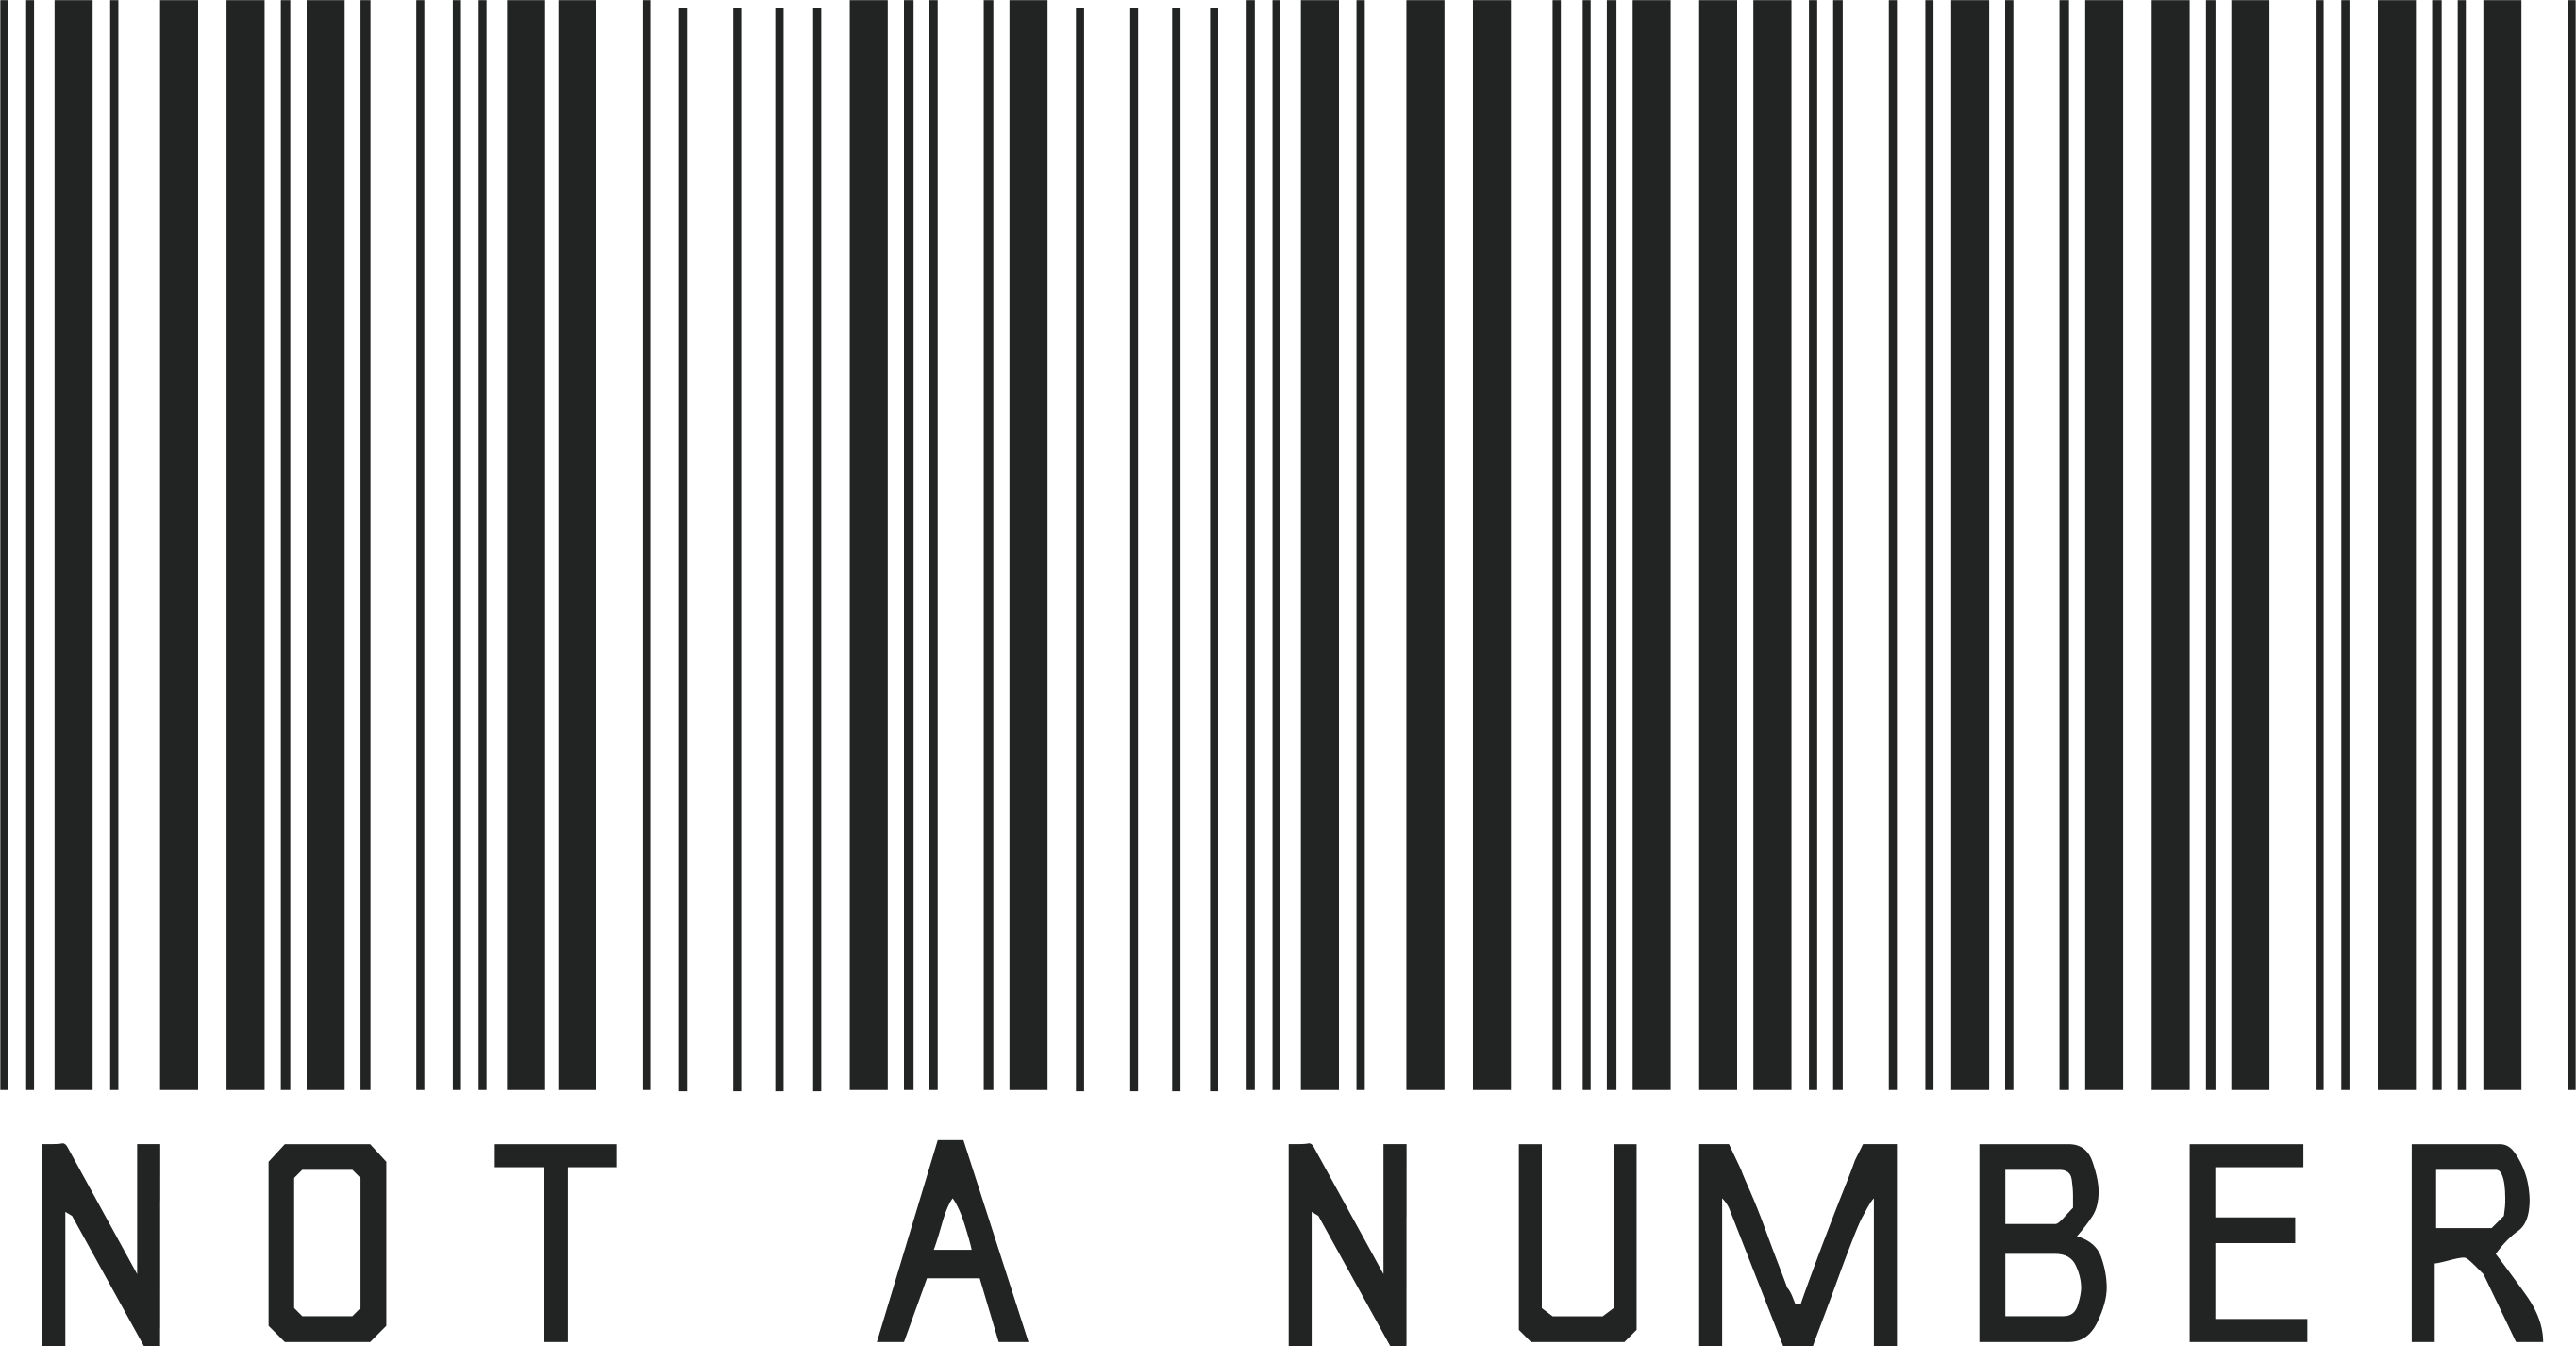 Barcode png. Index of css themes